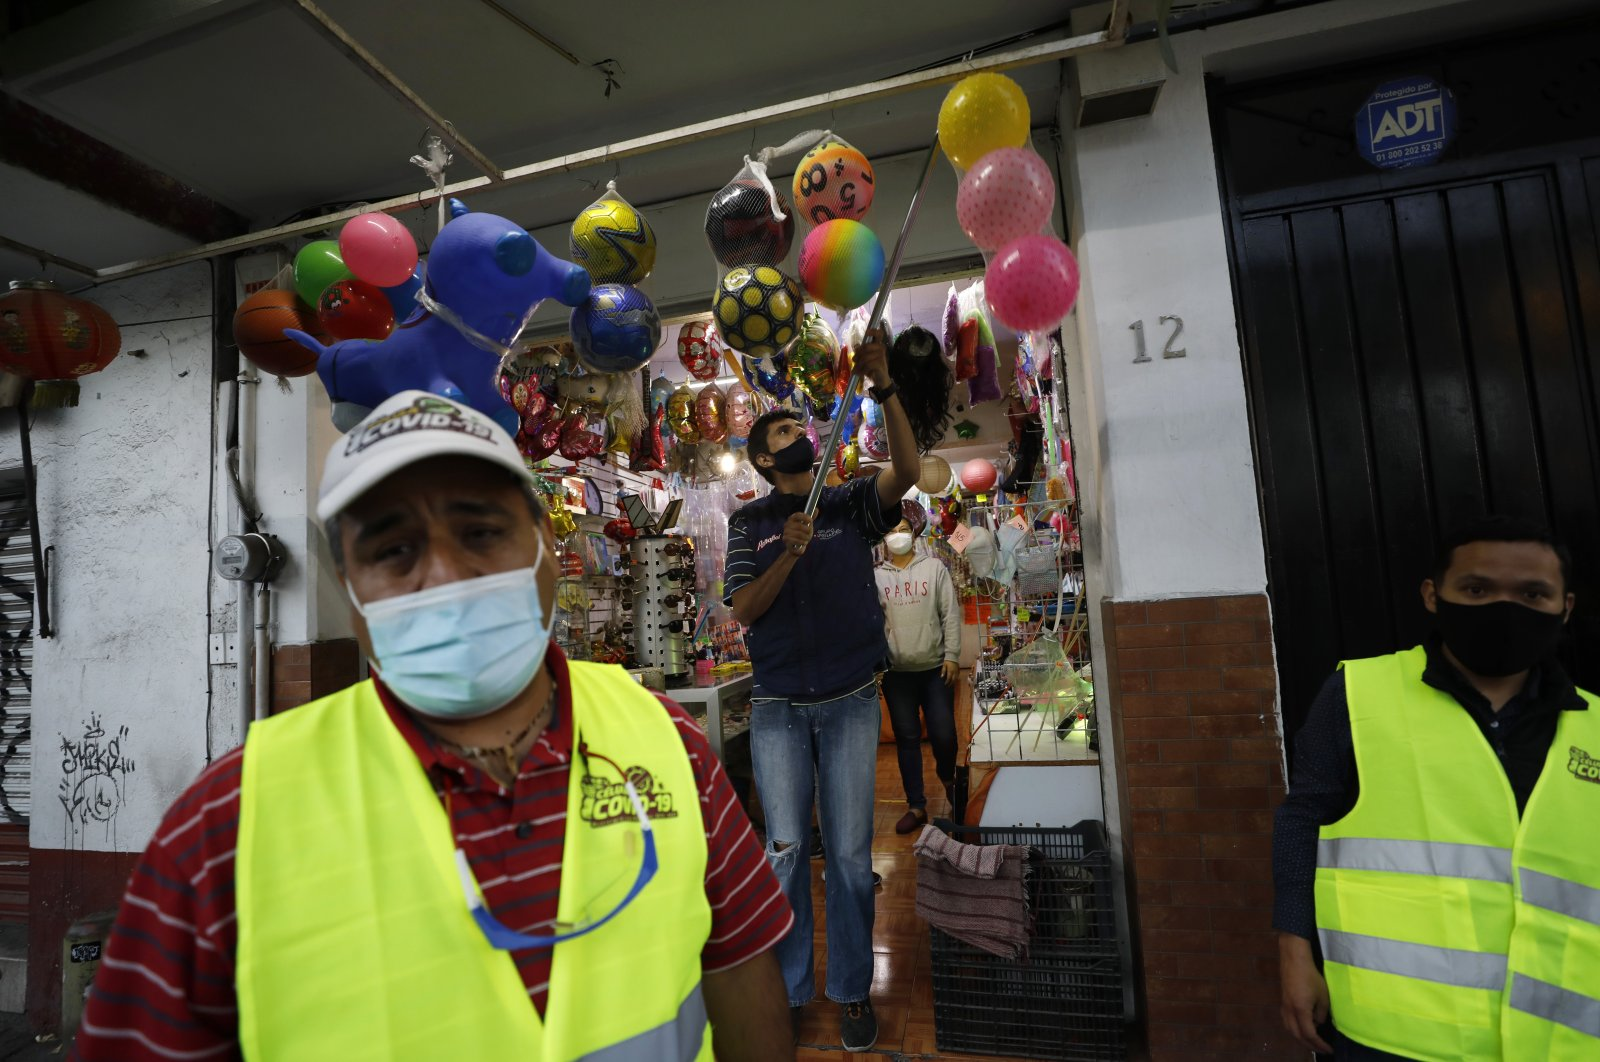 Workers begin to close shop after a visit by municipal public safety officers urging them to comply with a new state mandate saying nonessential businesses need to close at 5 p.m., to help slow the spread of COVID-19, in Ecatepec, Mexico State, on the outskirts of Mexico City, Dec. 14, 2020. (AP Photo)